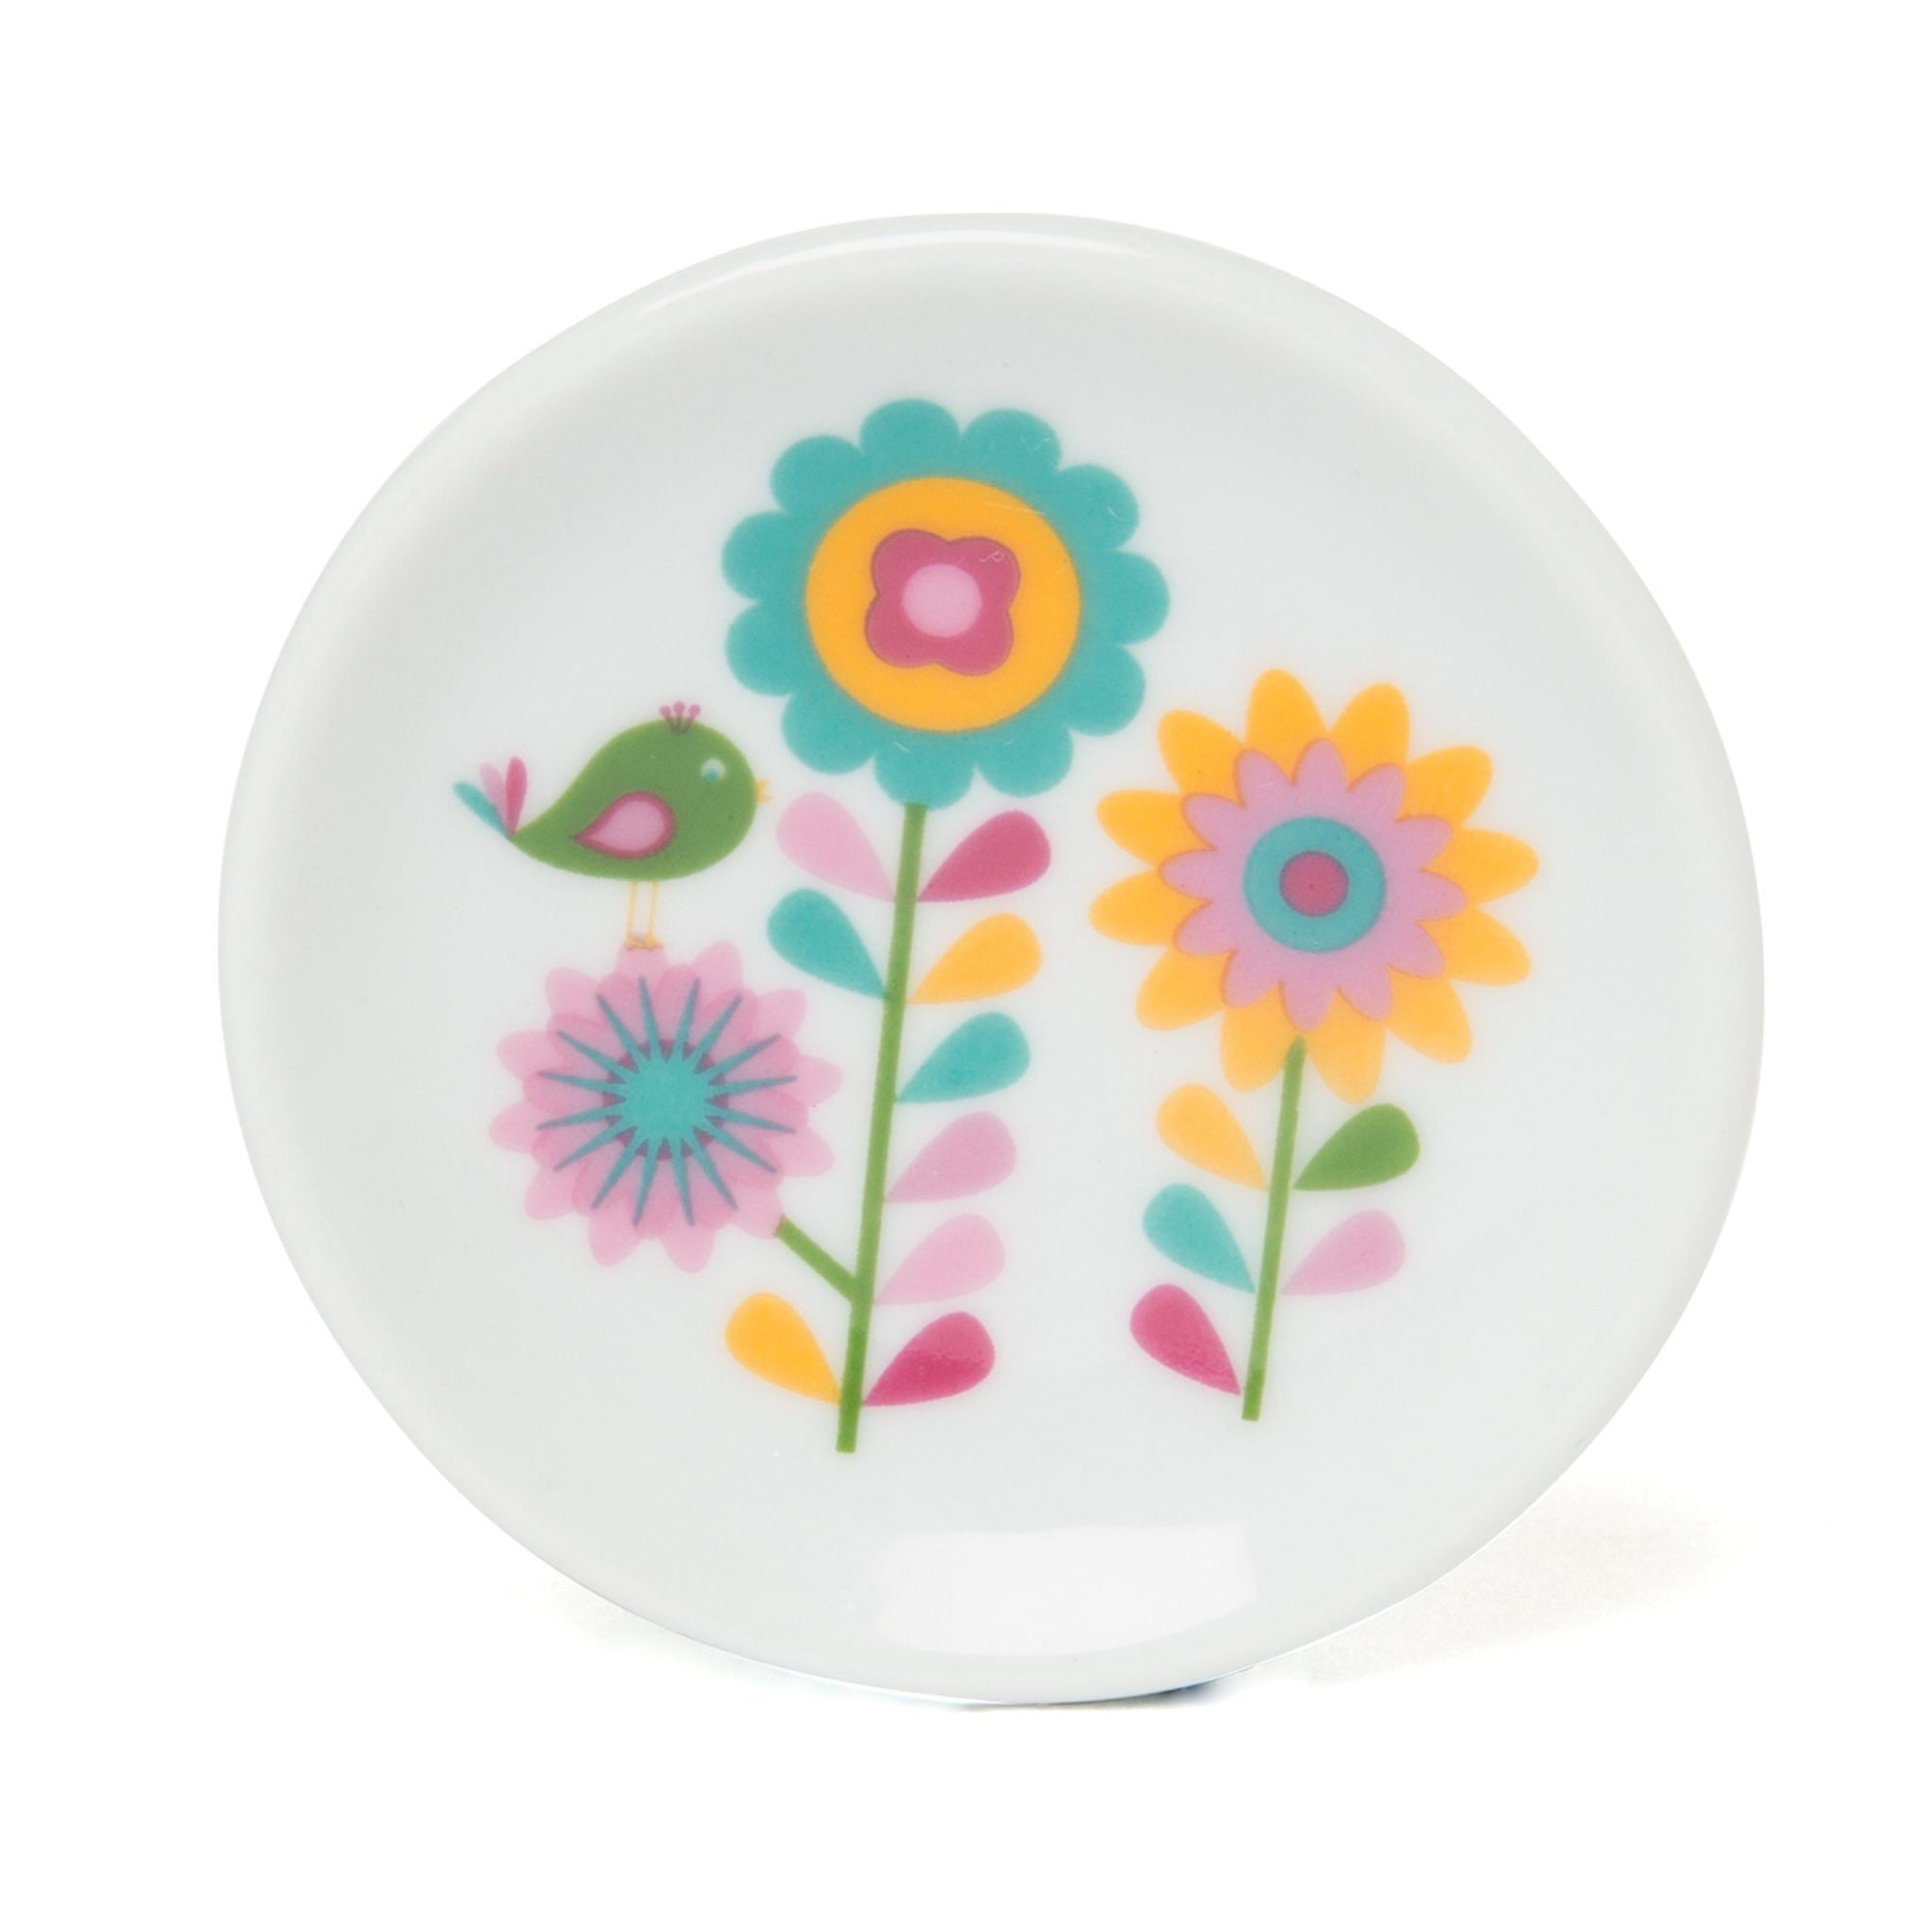 China plate for doll's tea set with bird and flower graphic.